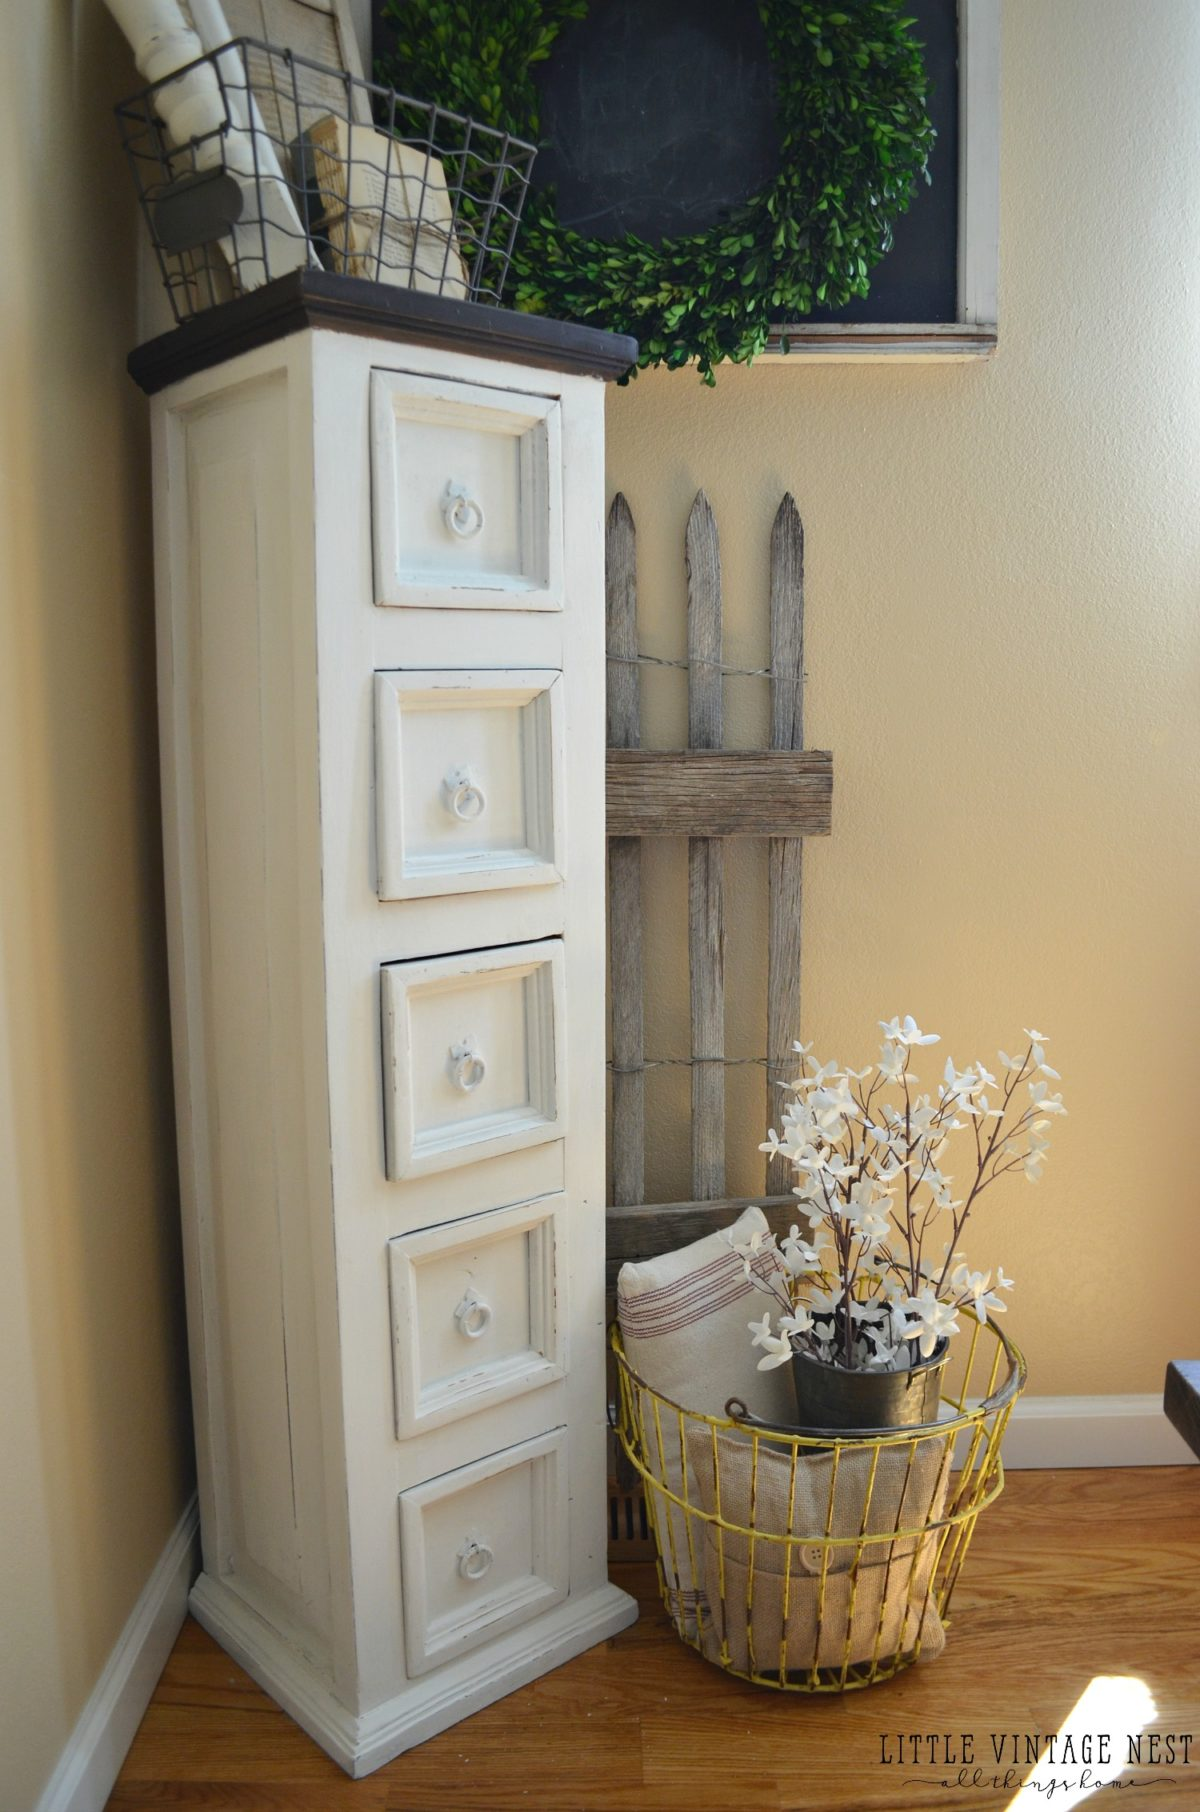 farmhouse decor dining room storage cabinet. Interior Design Ideas. Home Design Ideas